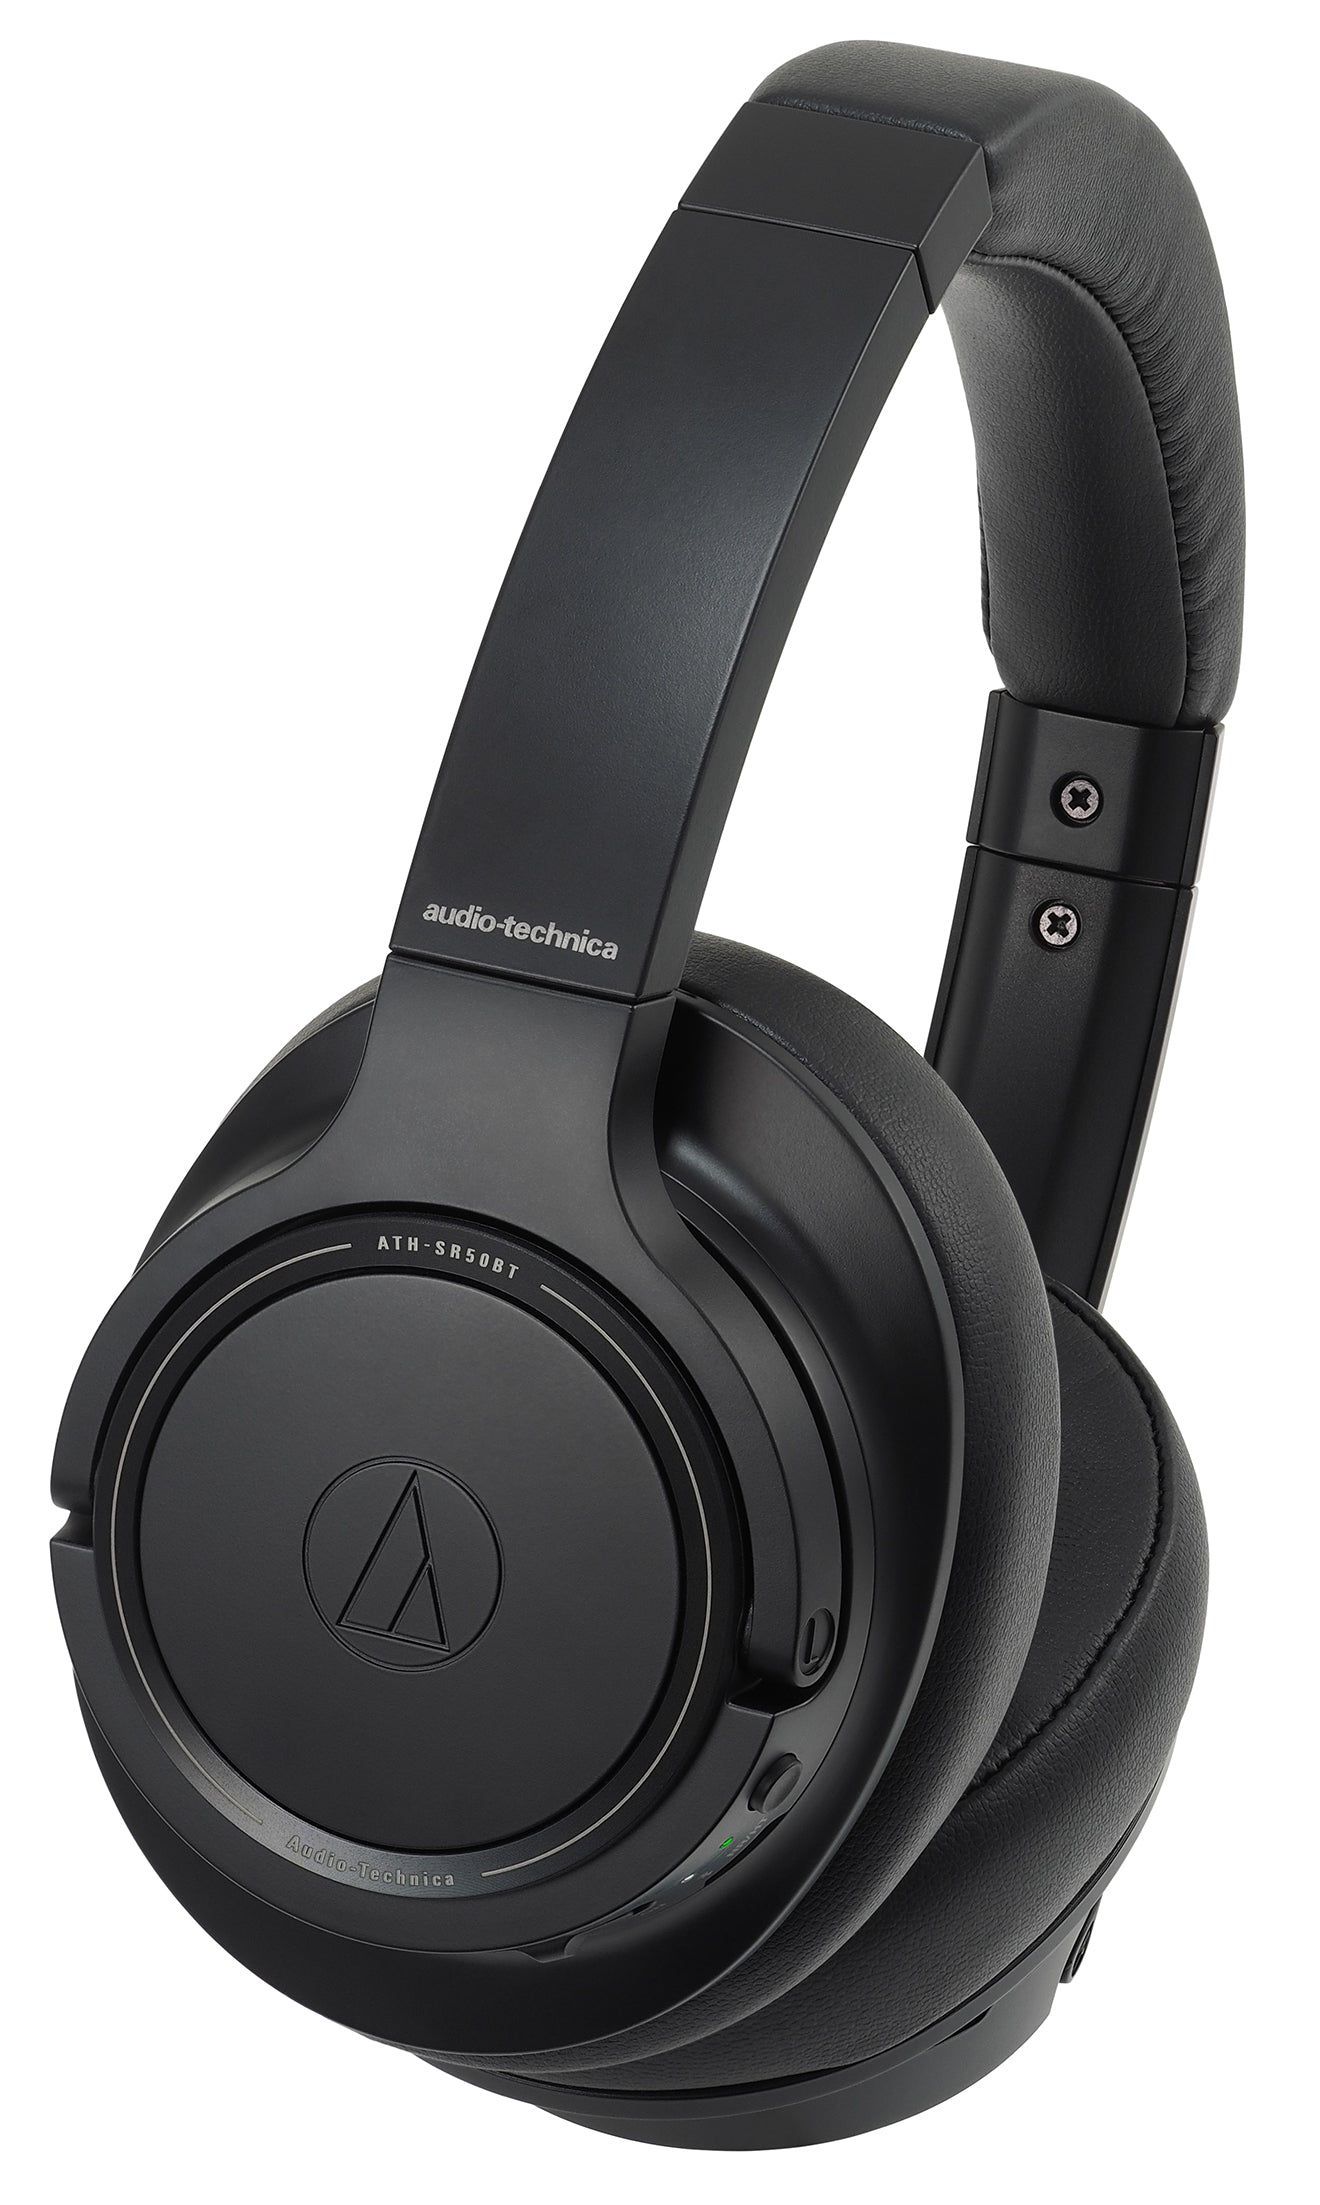 Audio Technica ATH-SR50BT Wireless Around-Ear Headphone